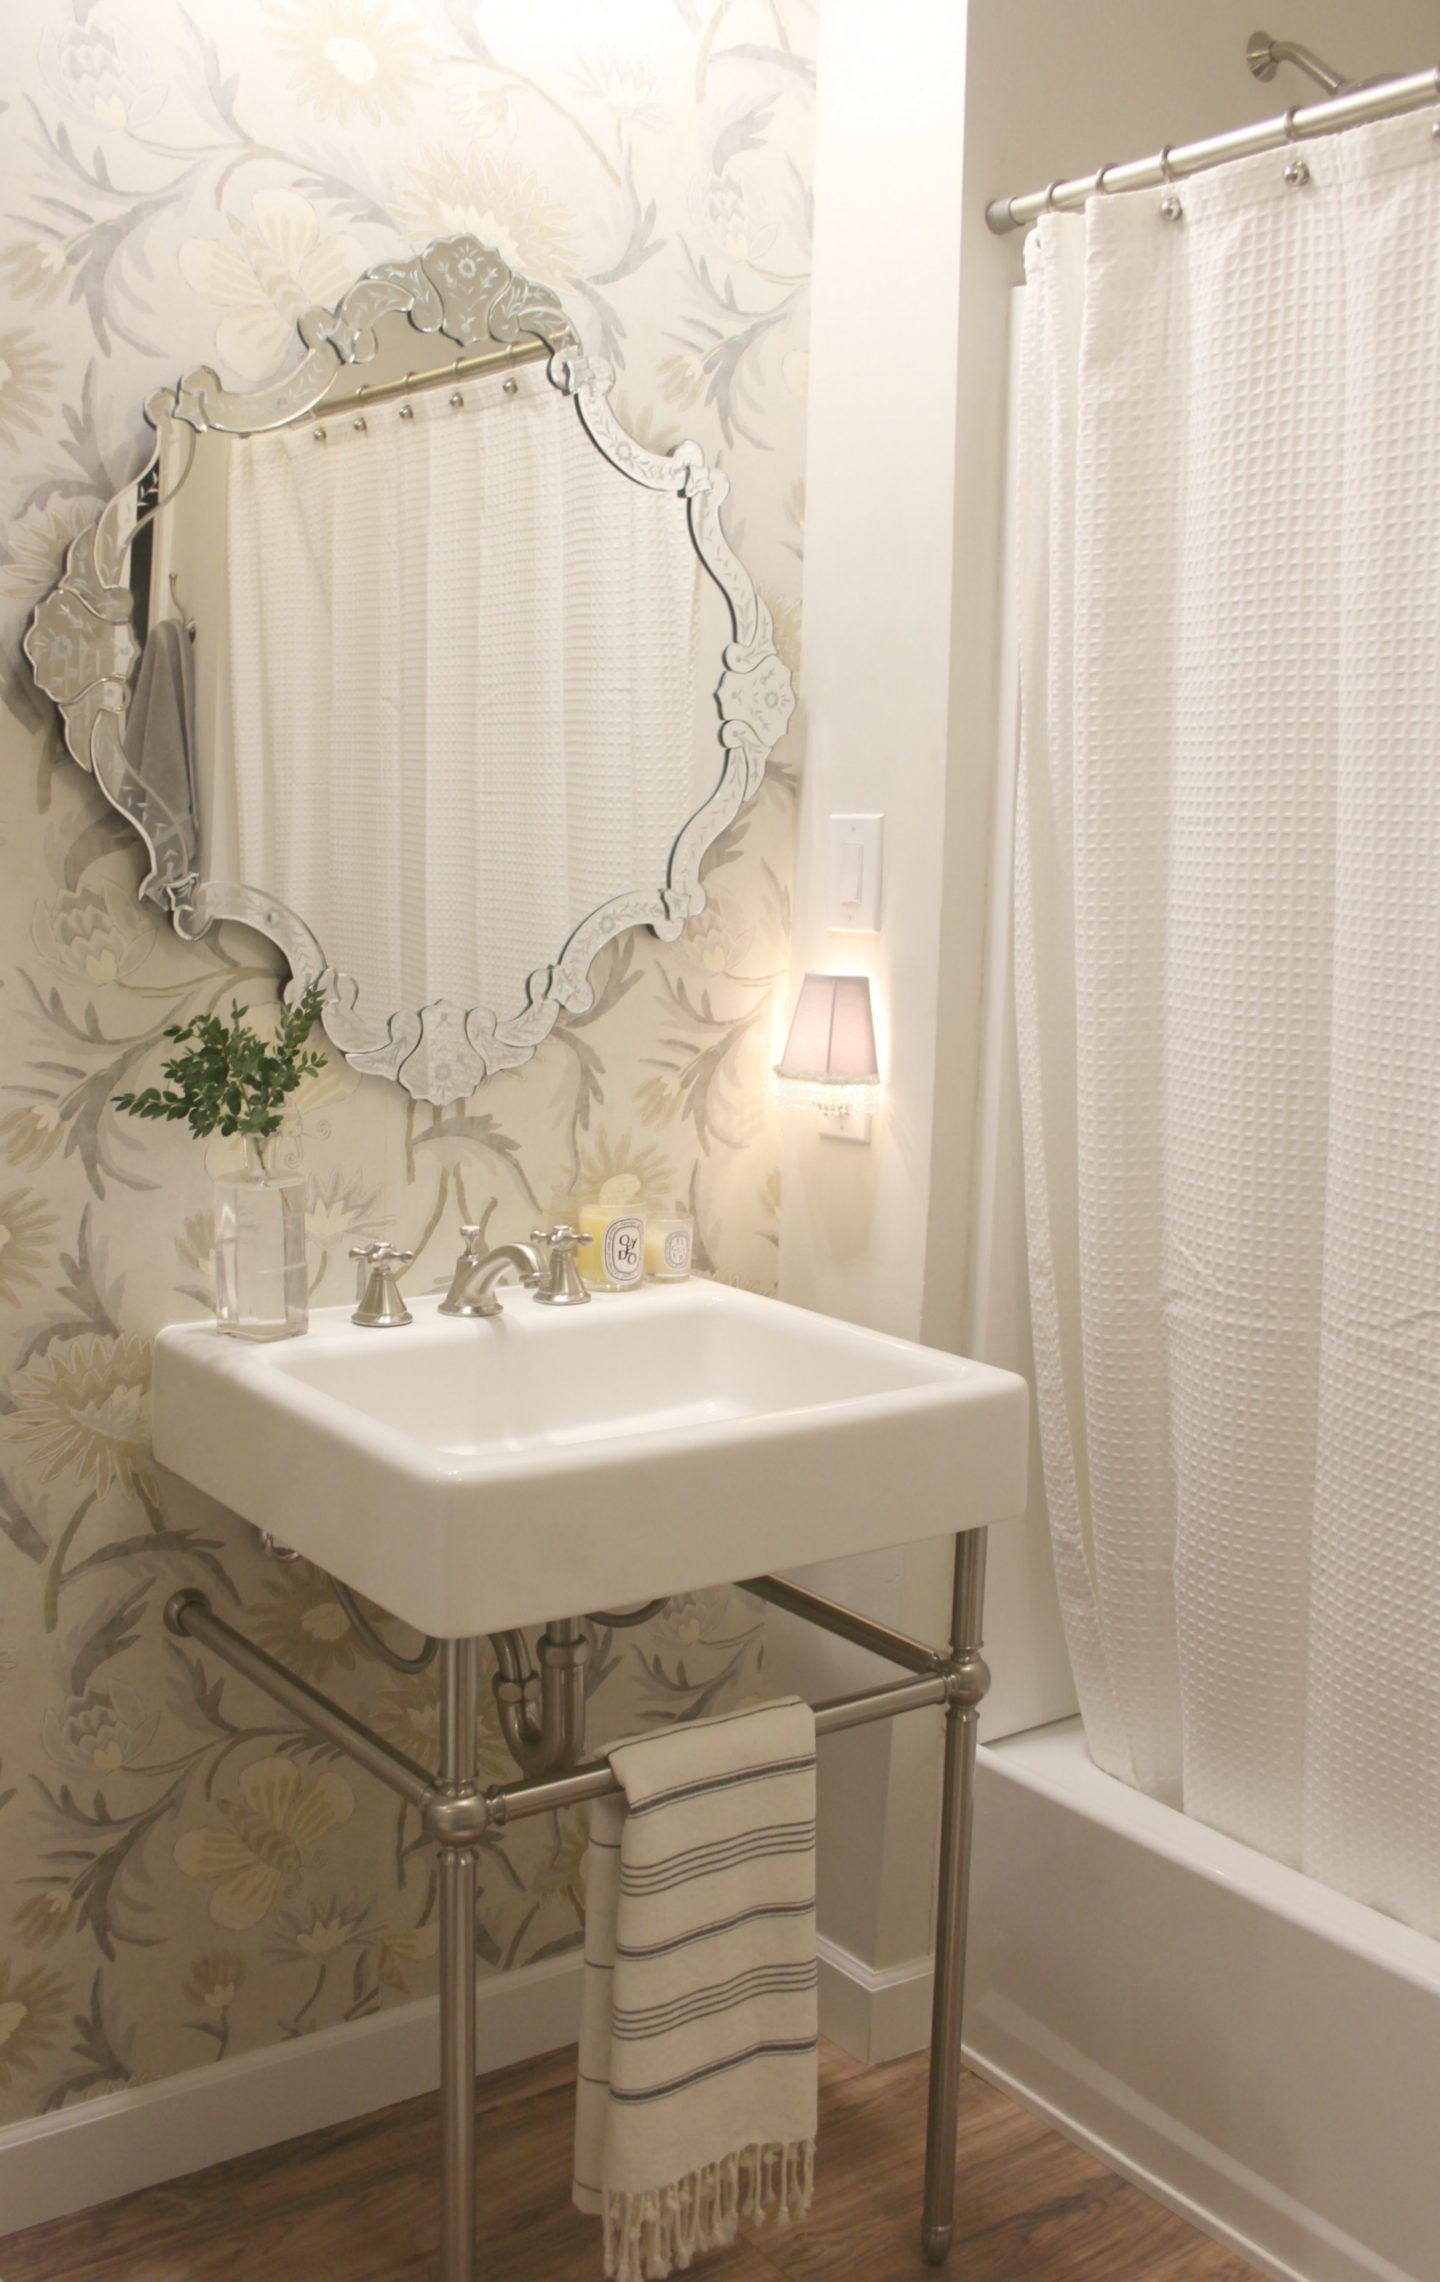 Classic Bathroom With Modern Farmhouse Fireclay Console Sink By DXV.  Wallpaper Is Thibaut. Venetian